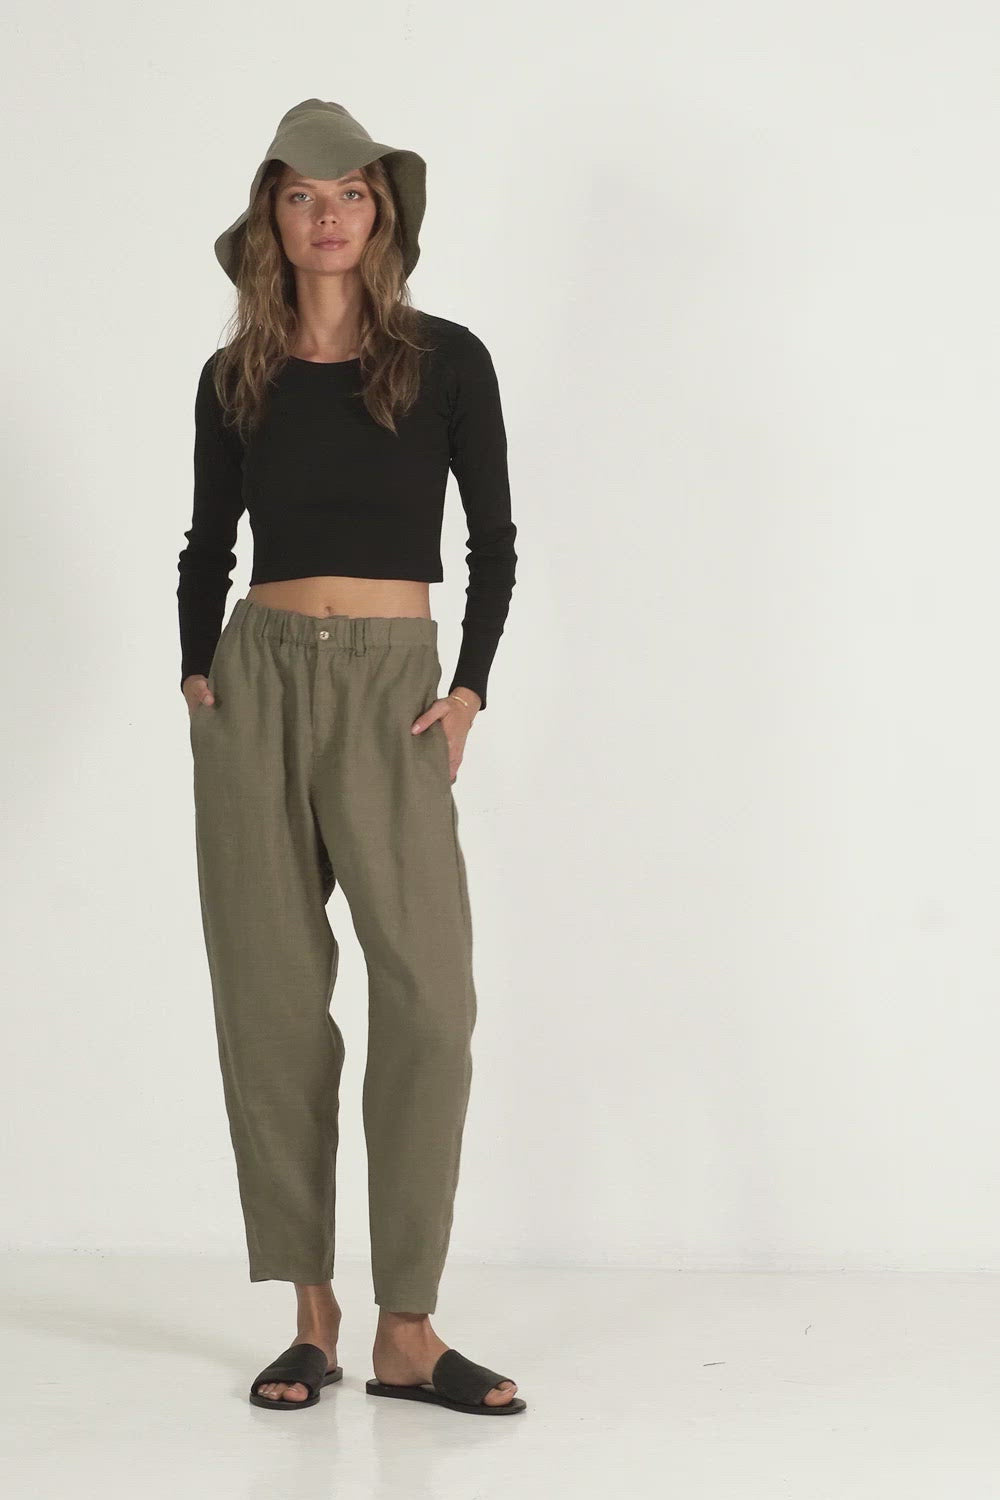 A woman wearing classic linen pants for winter by Lilya